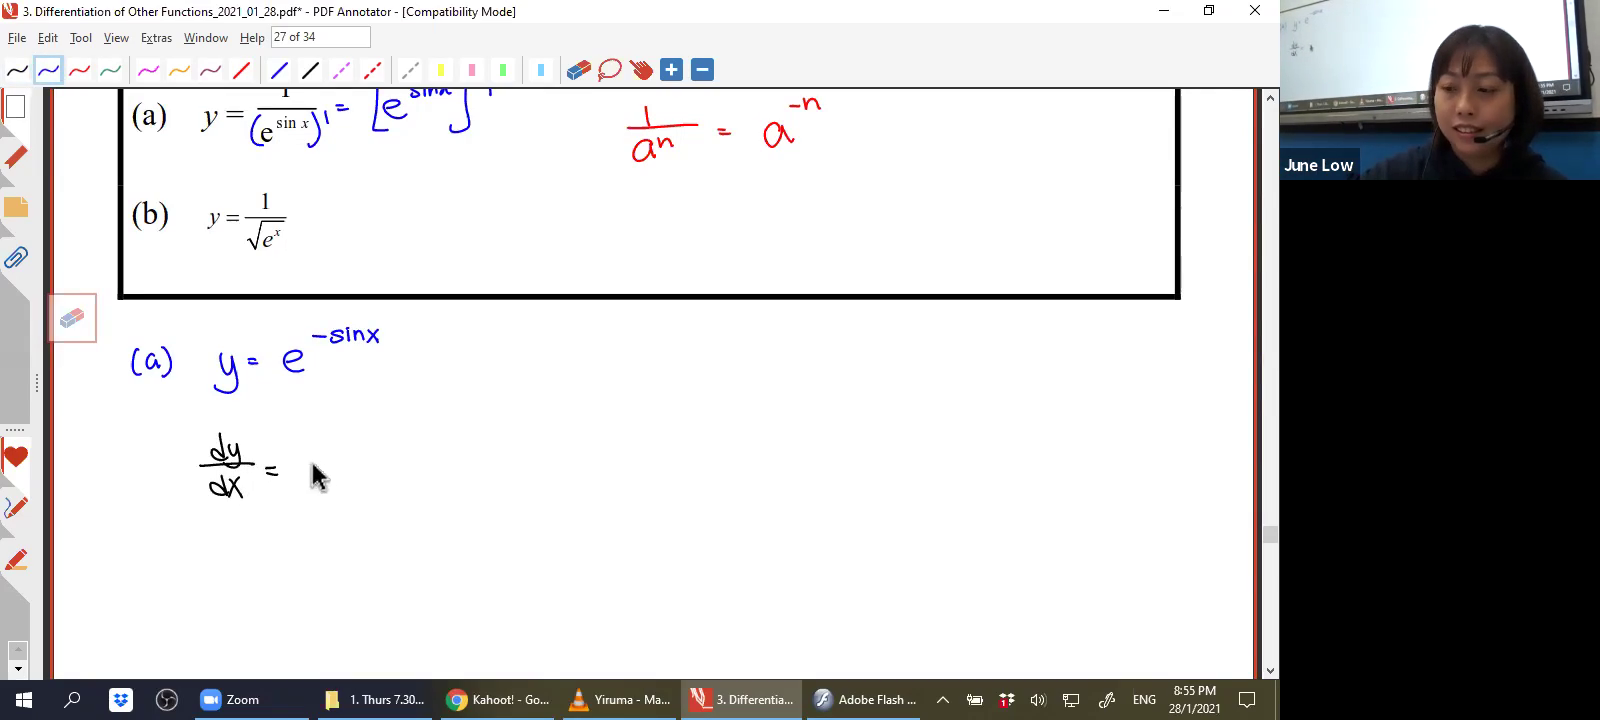 [DIFFERENTIATION OF OTHER FUNCTIONS] Exponential Functions